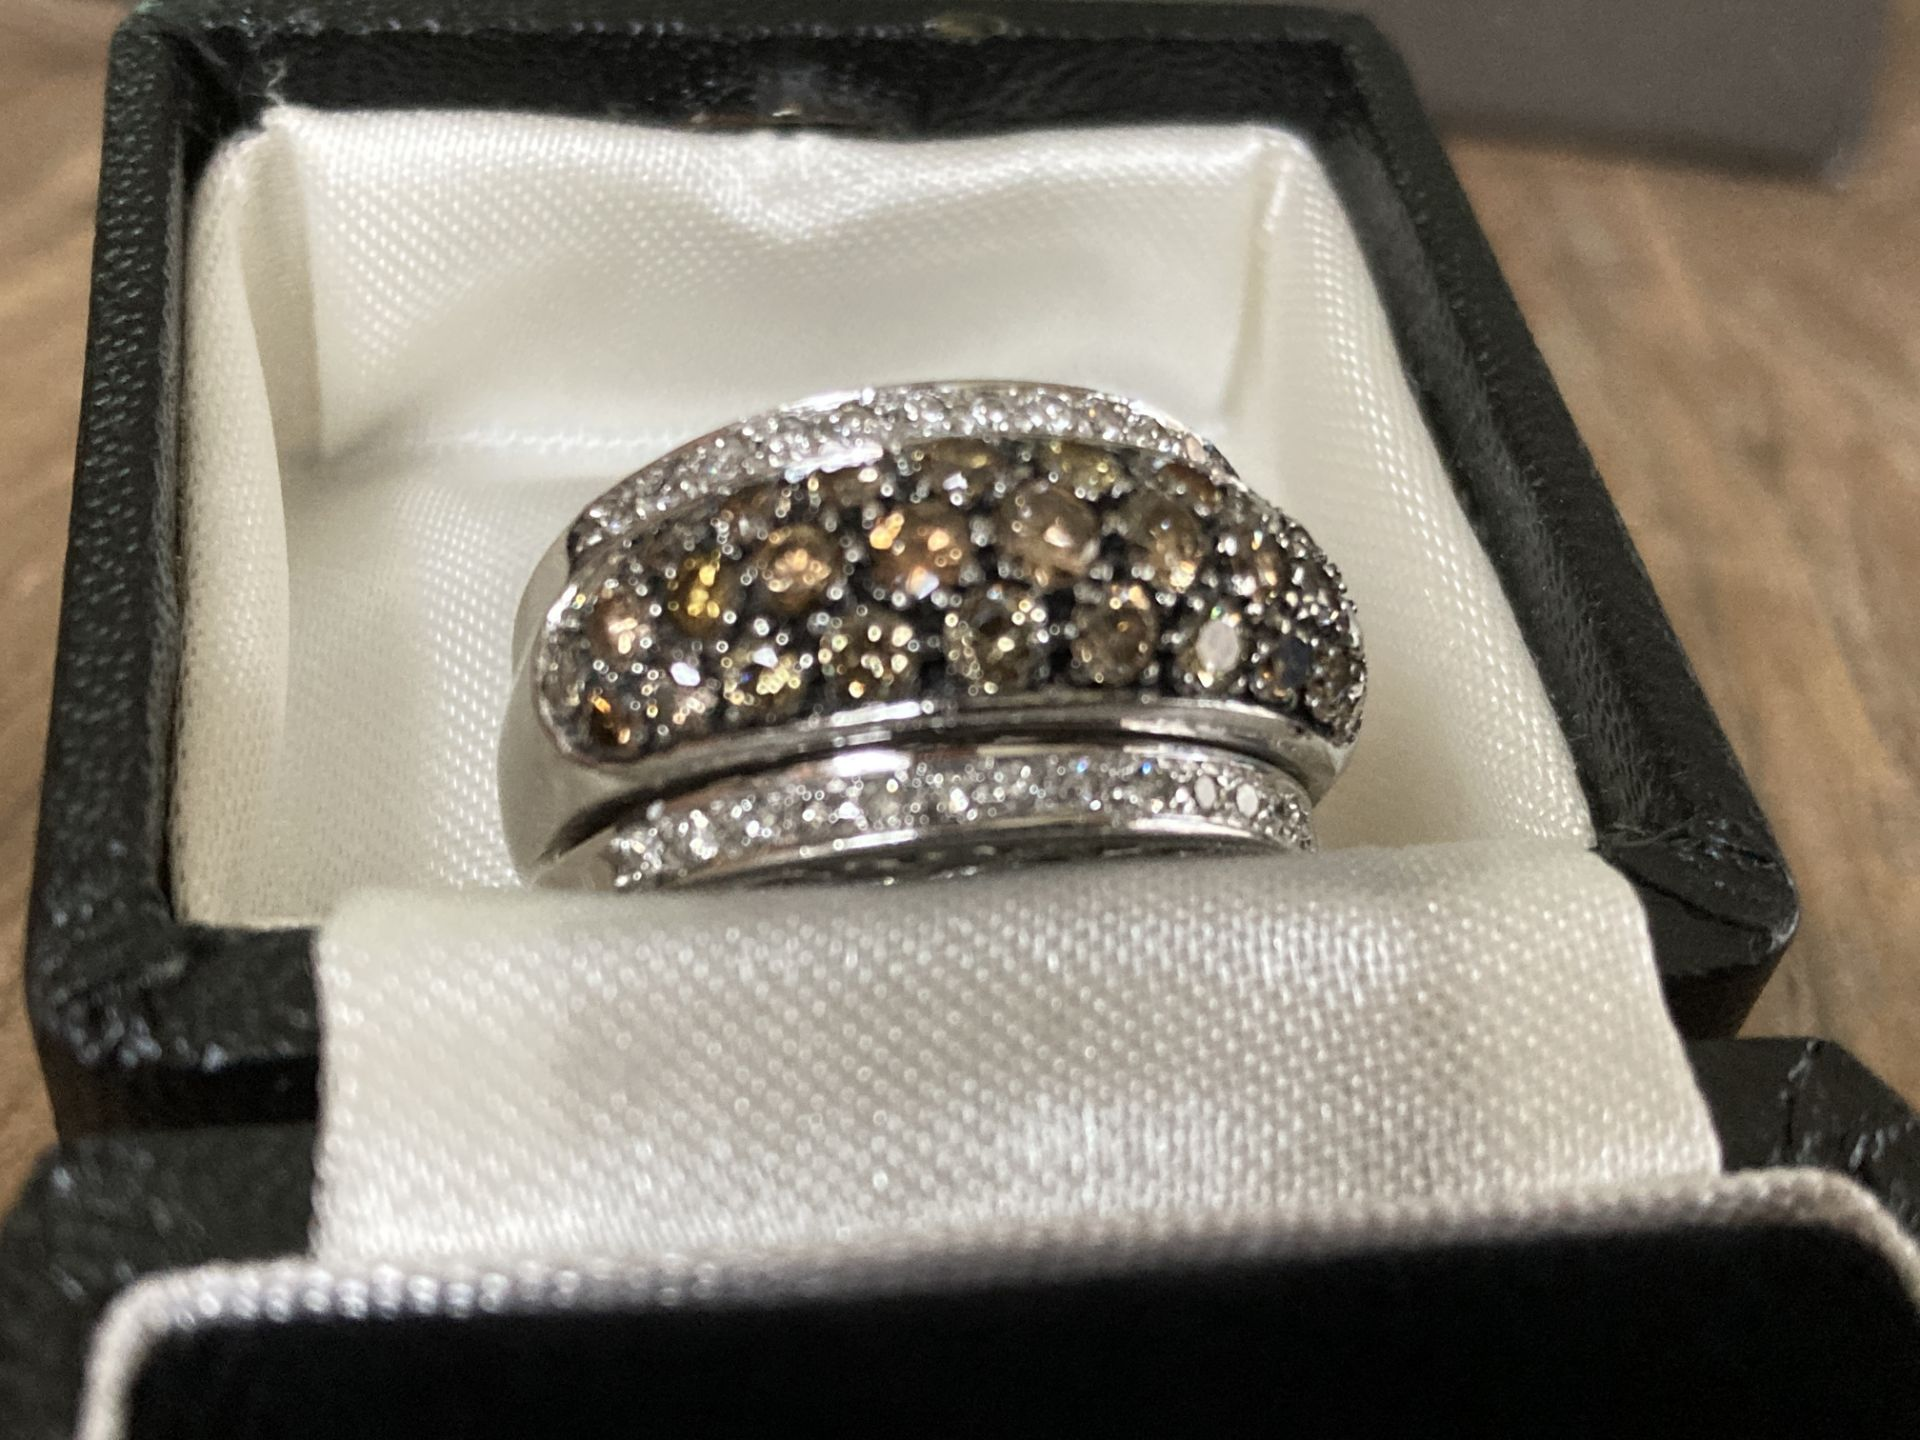 18CT WHITE GOLD 2.5CT BRILLIANT CUT DIAMOND RING (MIXED COLOUR DESIGN) - SIZE: T 1/2 / WEIGHT: 18.6G - Image 2 of 6